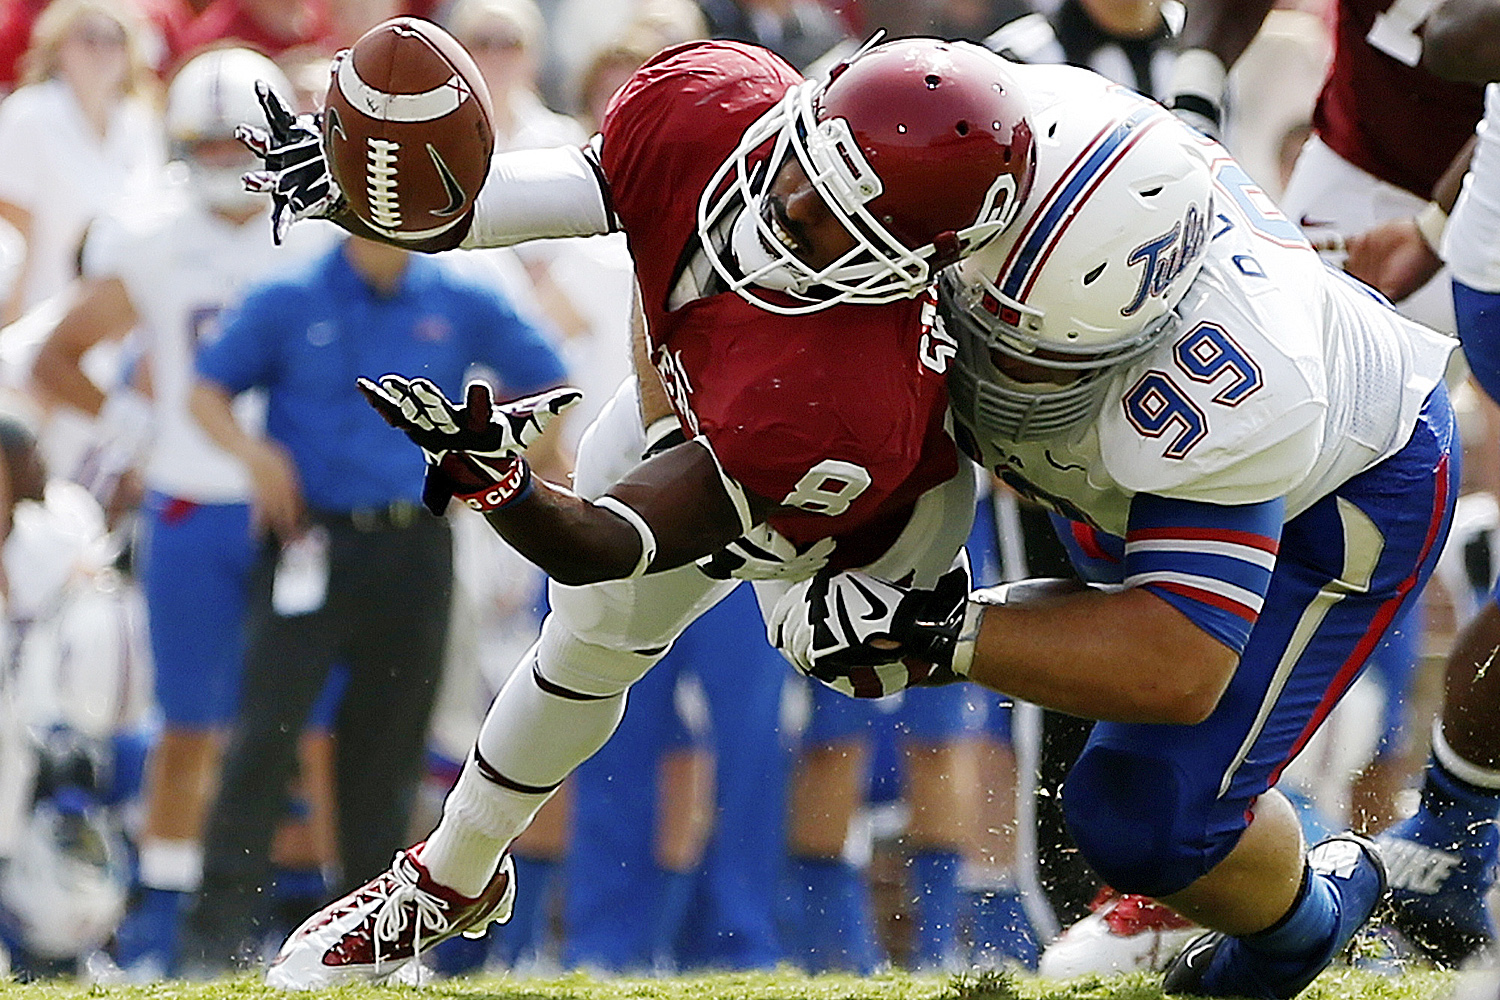 Oklahoma wide receiver Jalen Saunders (8) can't hold onto the pass as he is hit by Tulsa defender Derrick Luetjen. (AP Photo/Sue Ogrocki)